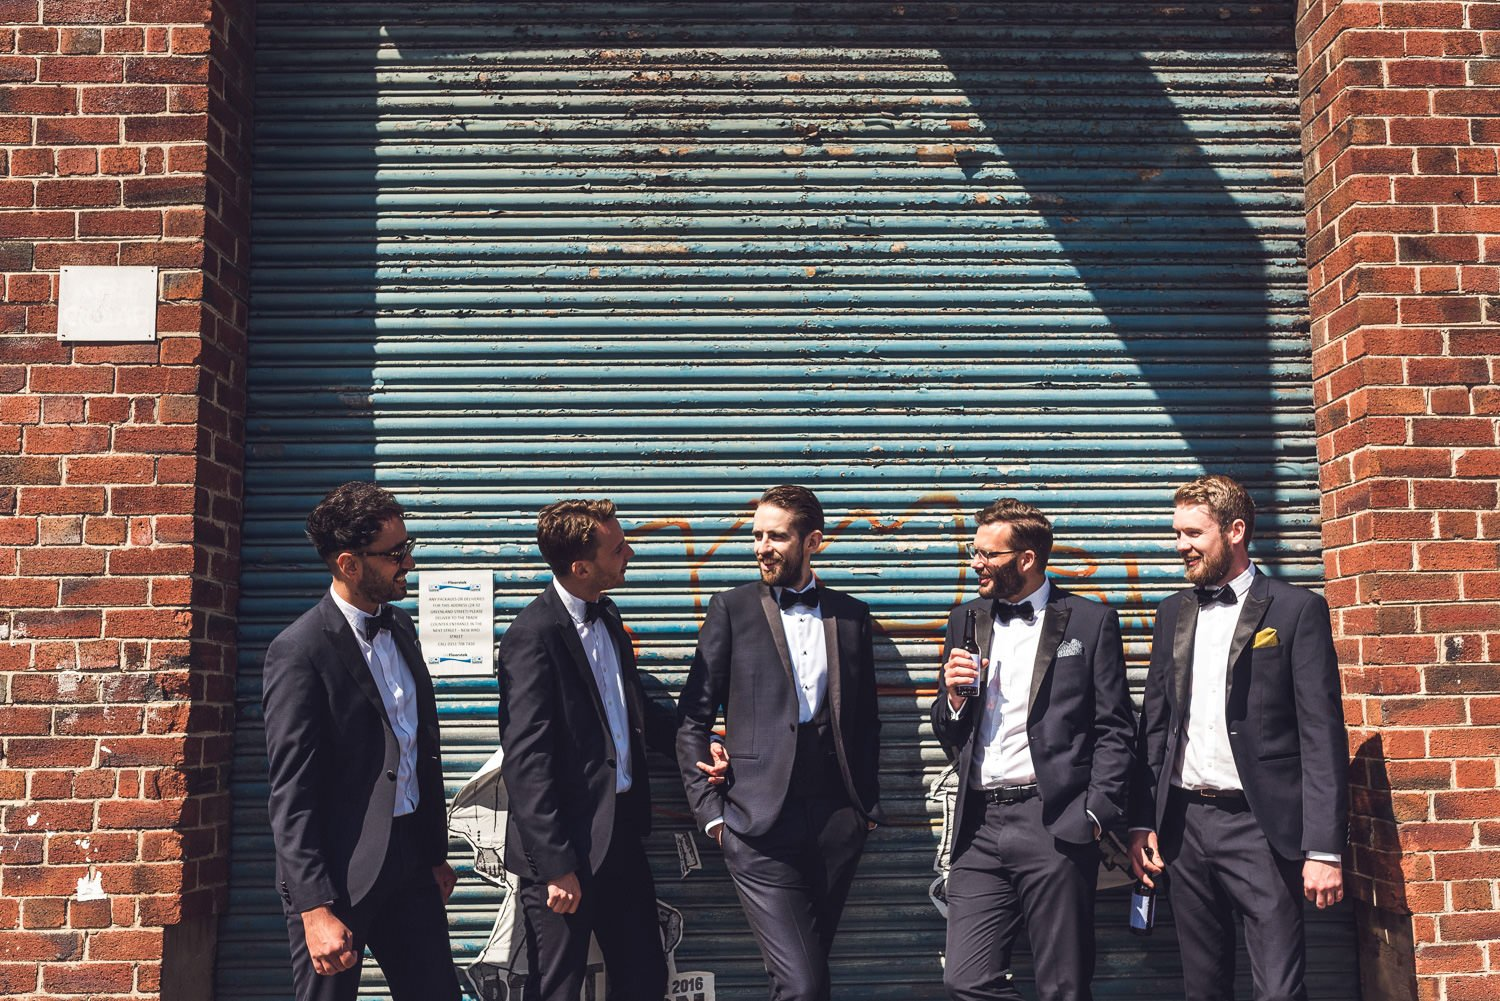 Ushers in tuxedos in front of rusted metal shutters Constellations Liverpool wedding photography